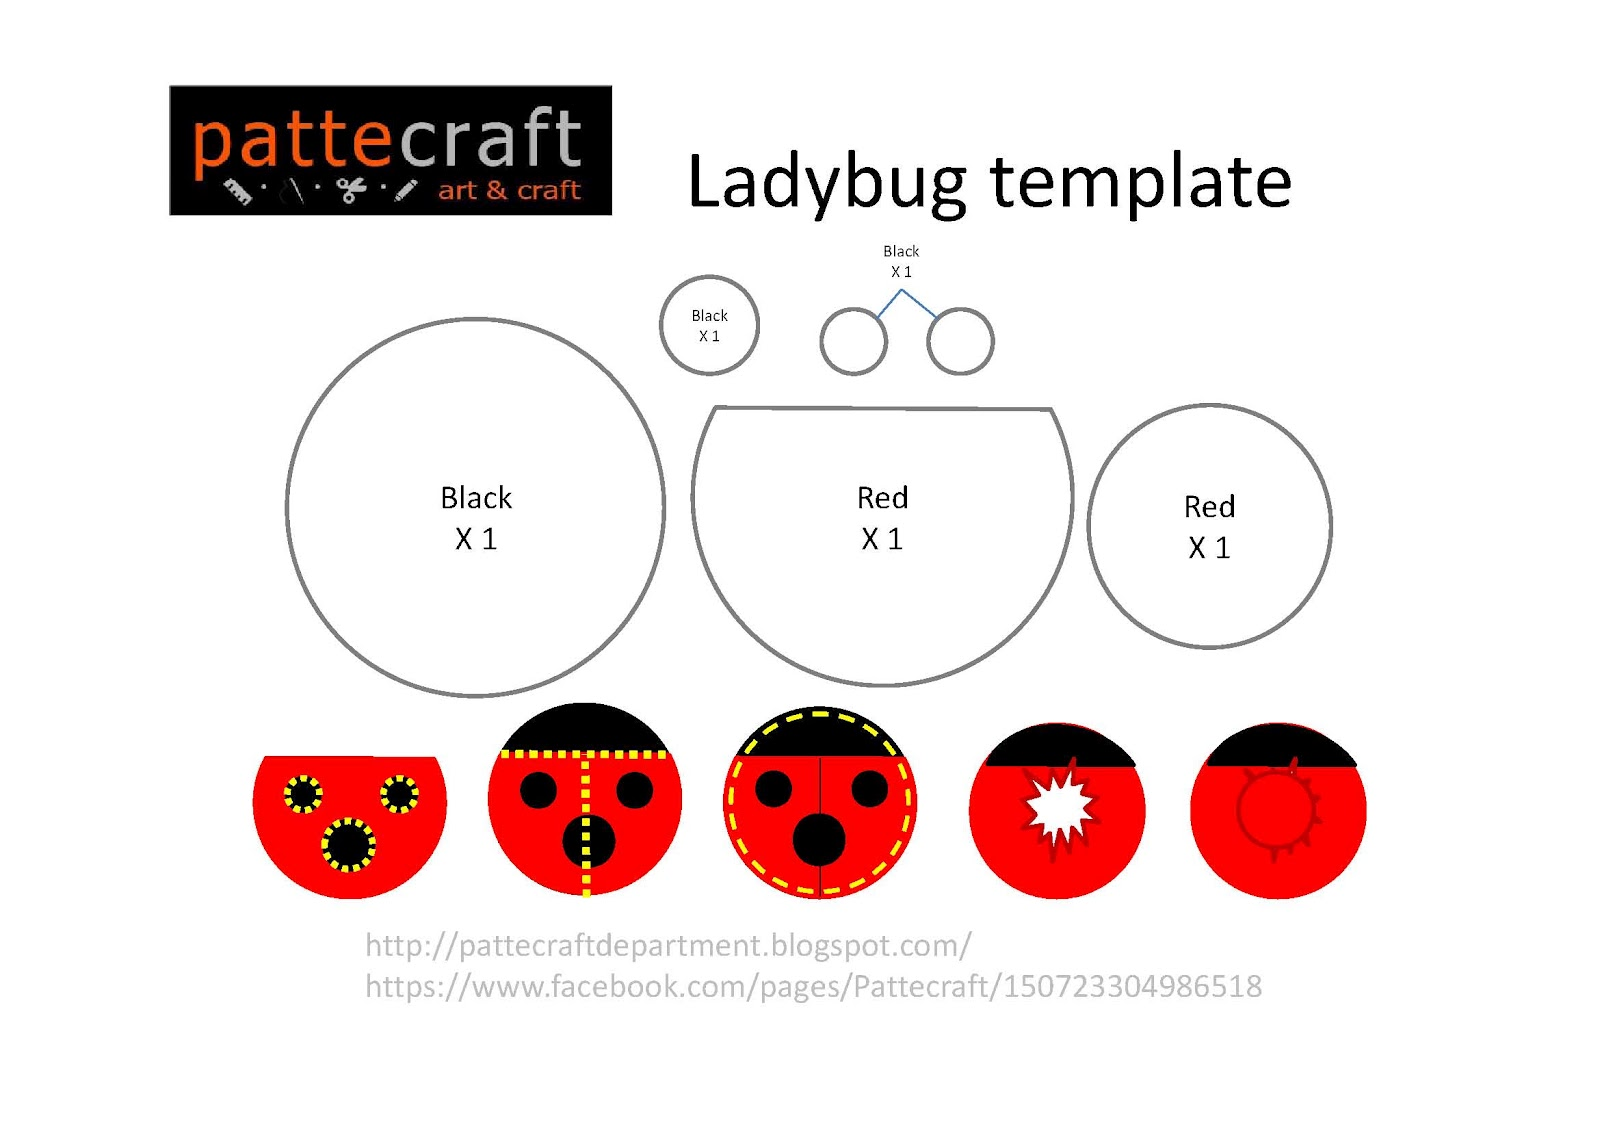 Pattecraft give away ladybug template ladybug template from pattecraft pooptronica Gallery